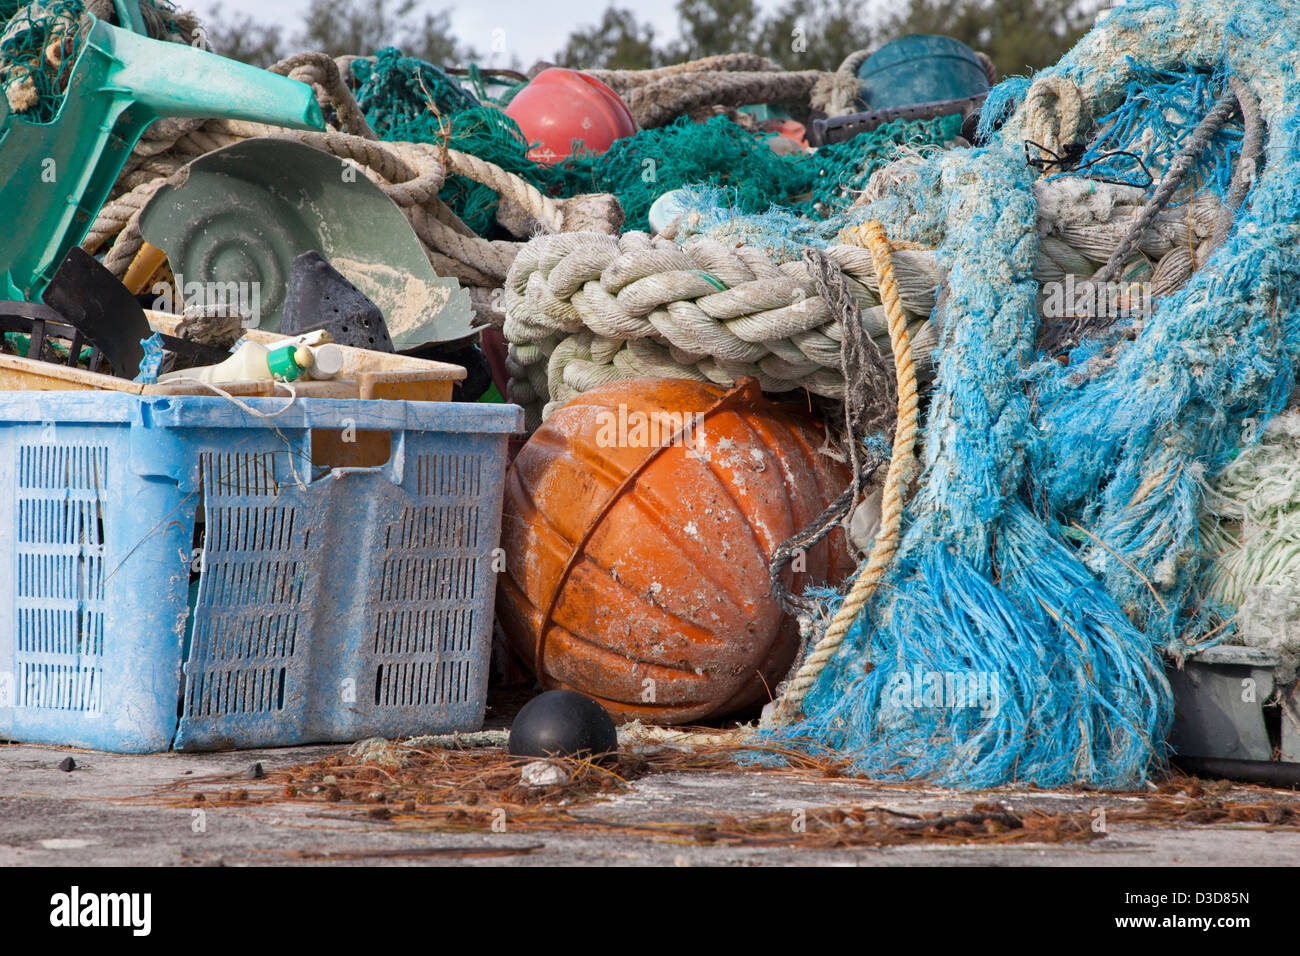 Marine debris brought to Midway Atoll shores by ocean currents then collected to be shipped off island for recycling - Stock Image